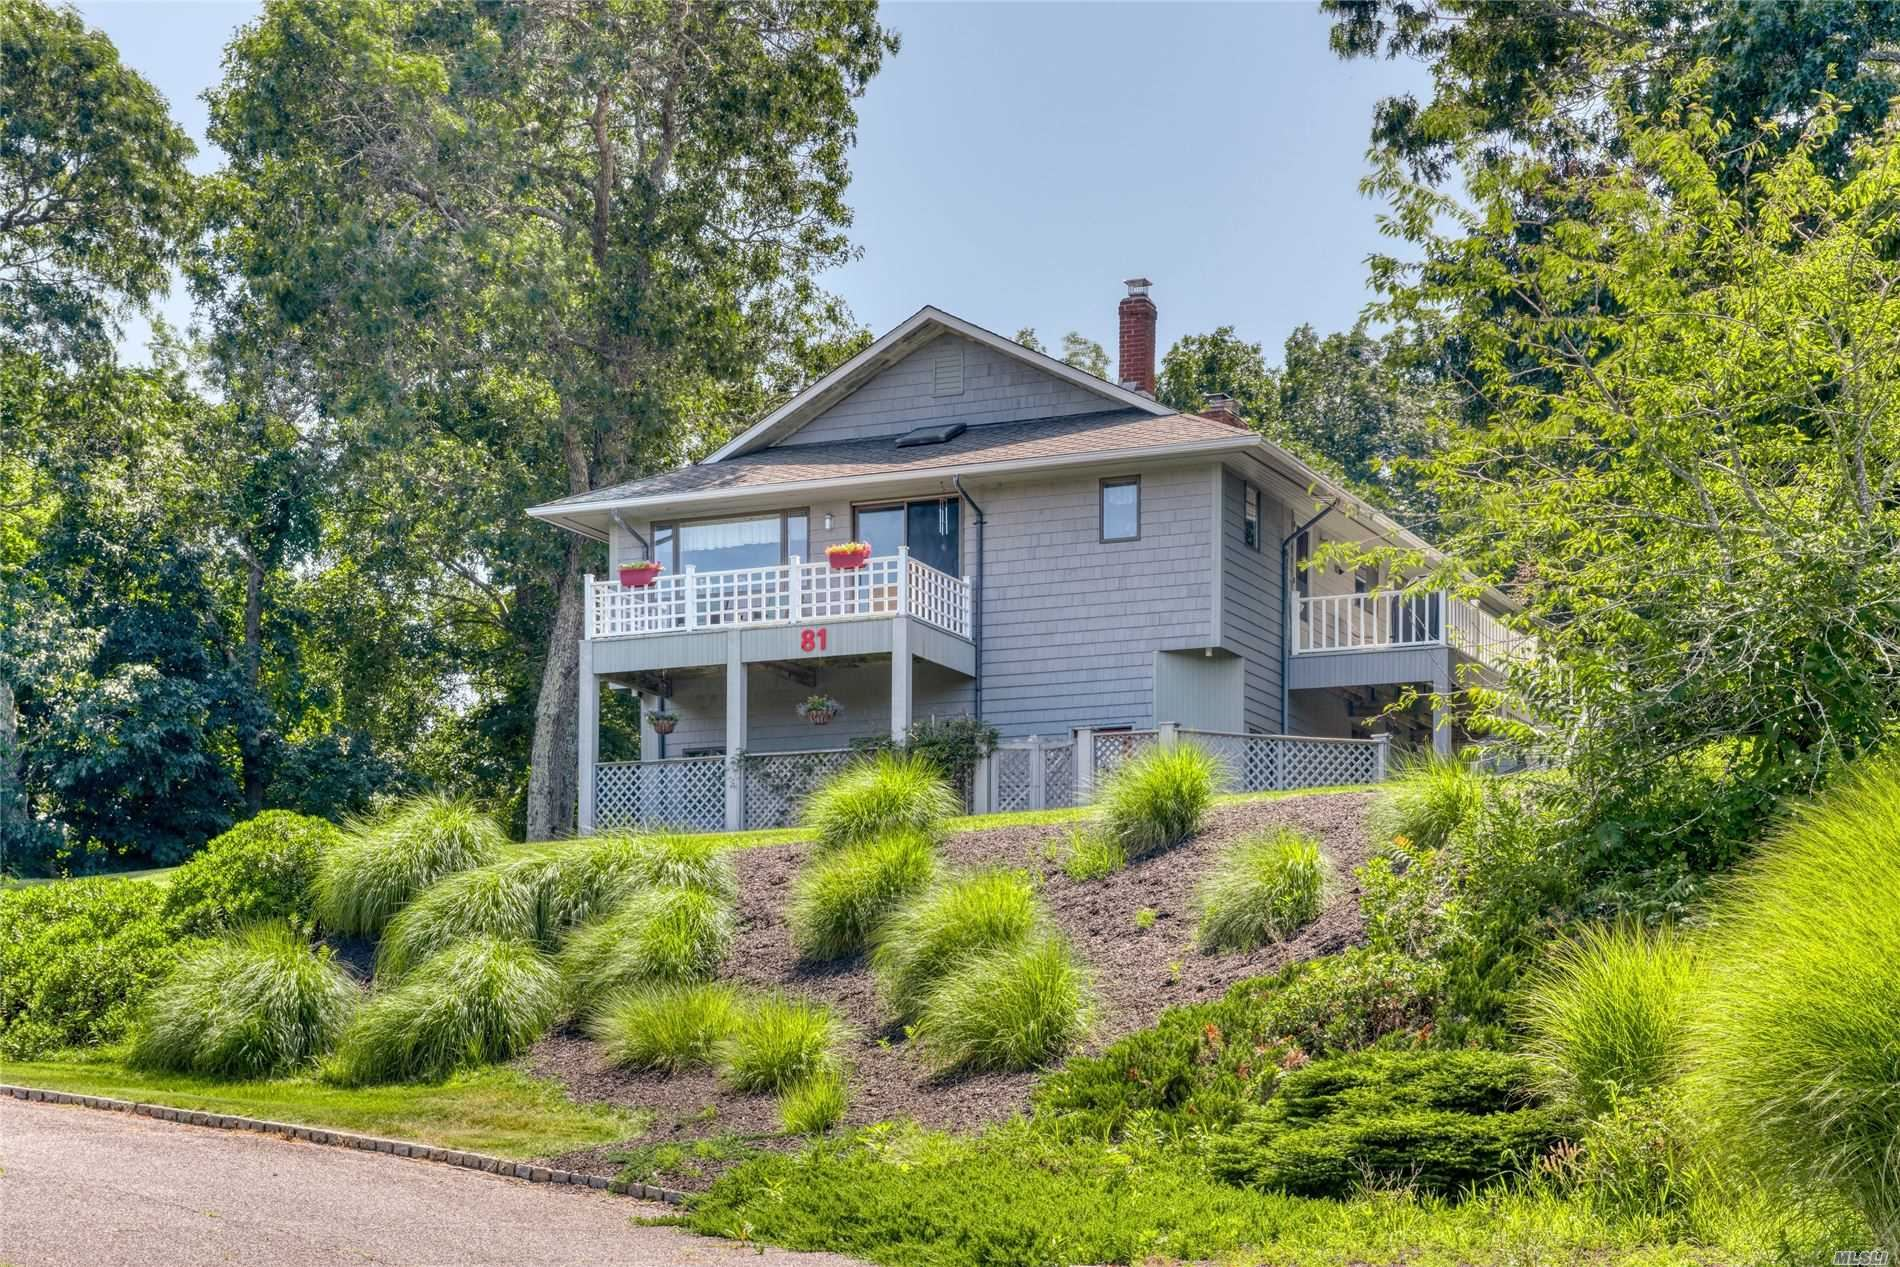 81 Manor Lane, Jamesport, NY 11947 - MLS#: 3153024